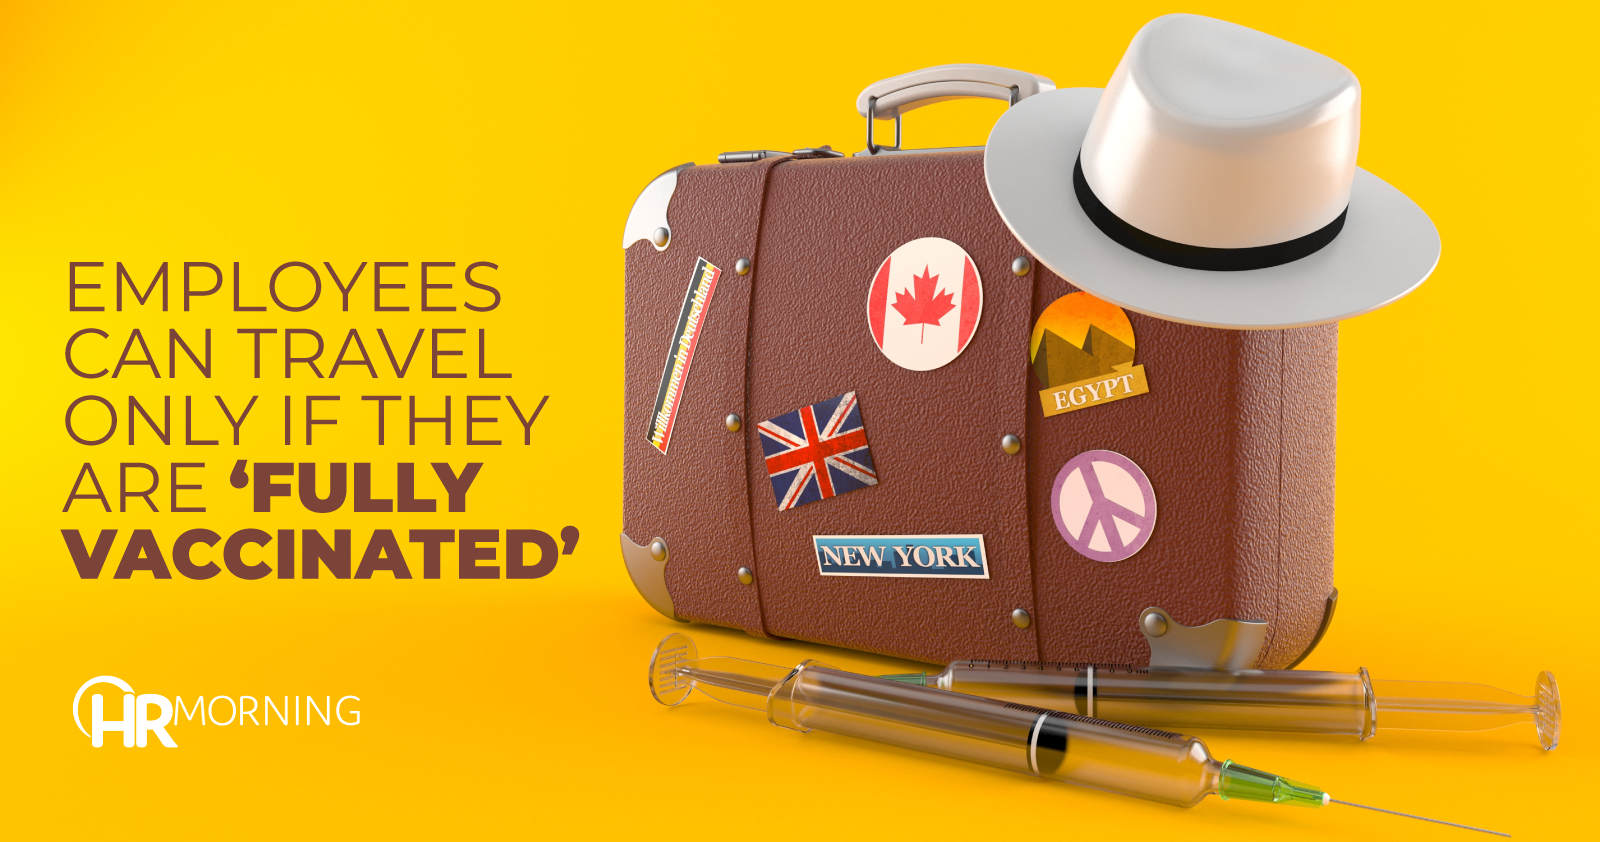 employees can travel only if they are fully vaccinated